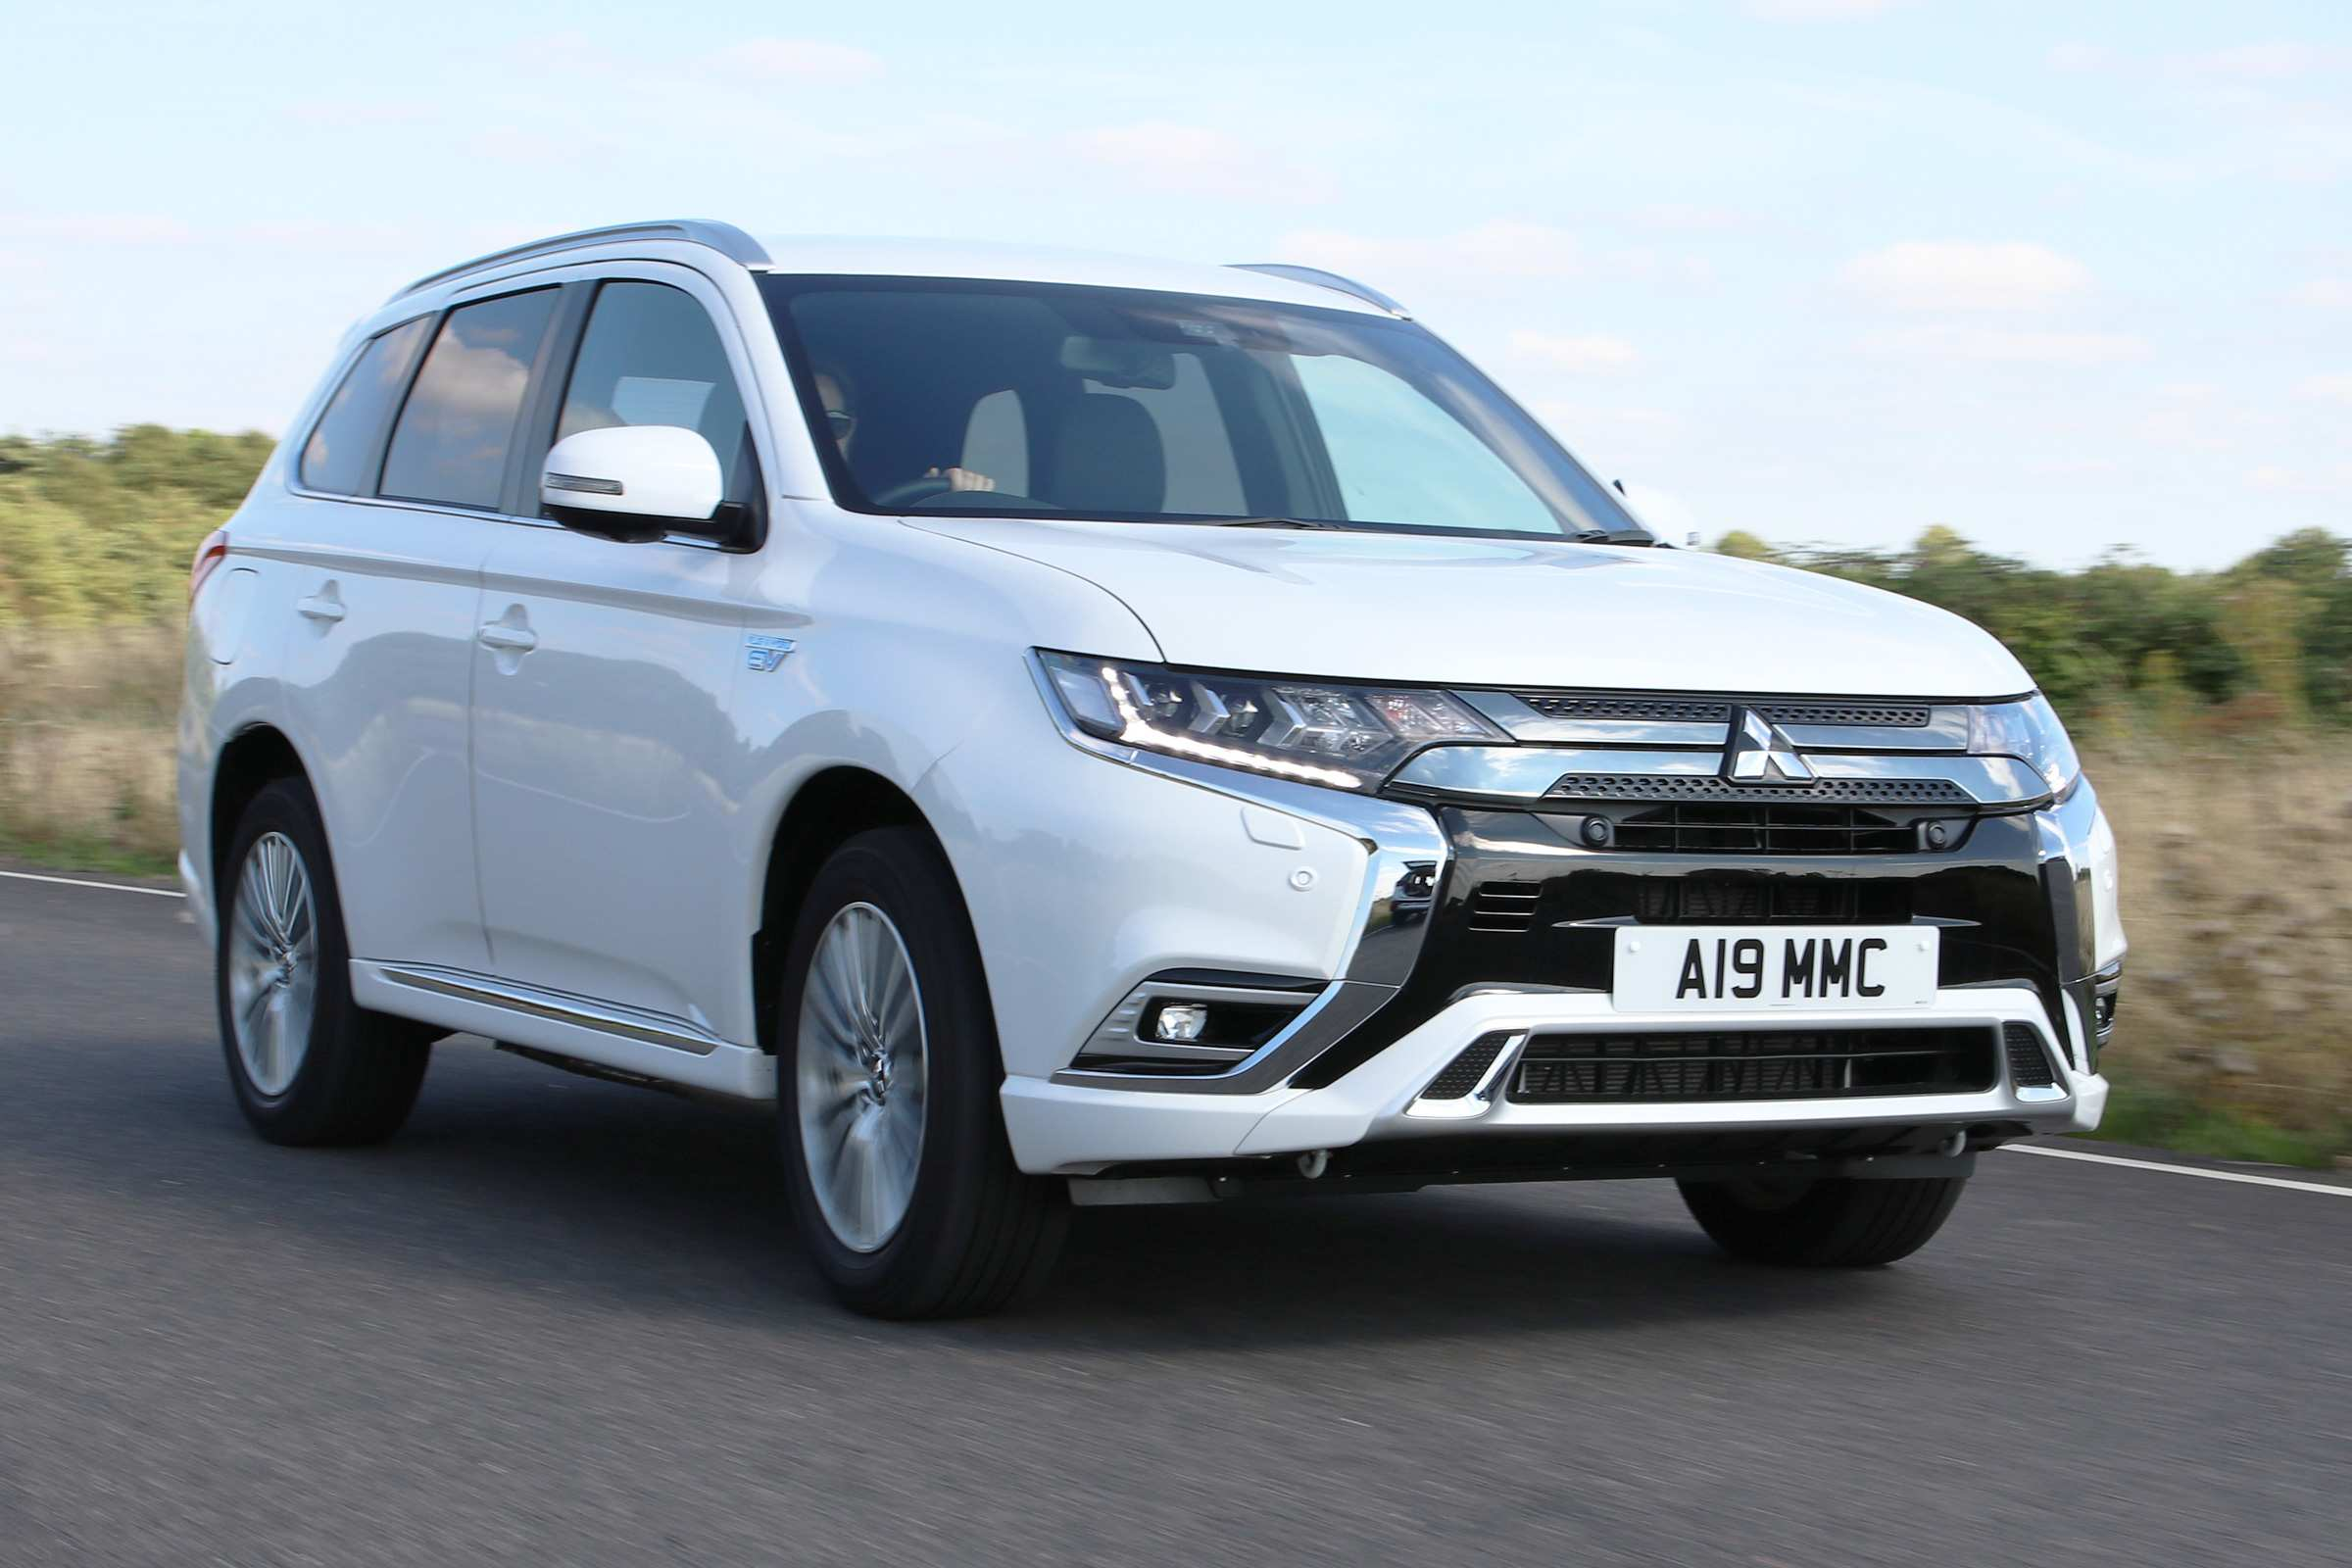 40 Gallery of 2019 Mitsubishi Outlander Phev Review Configurations by 2019 Mitsubishi Outlander Phev Review